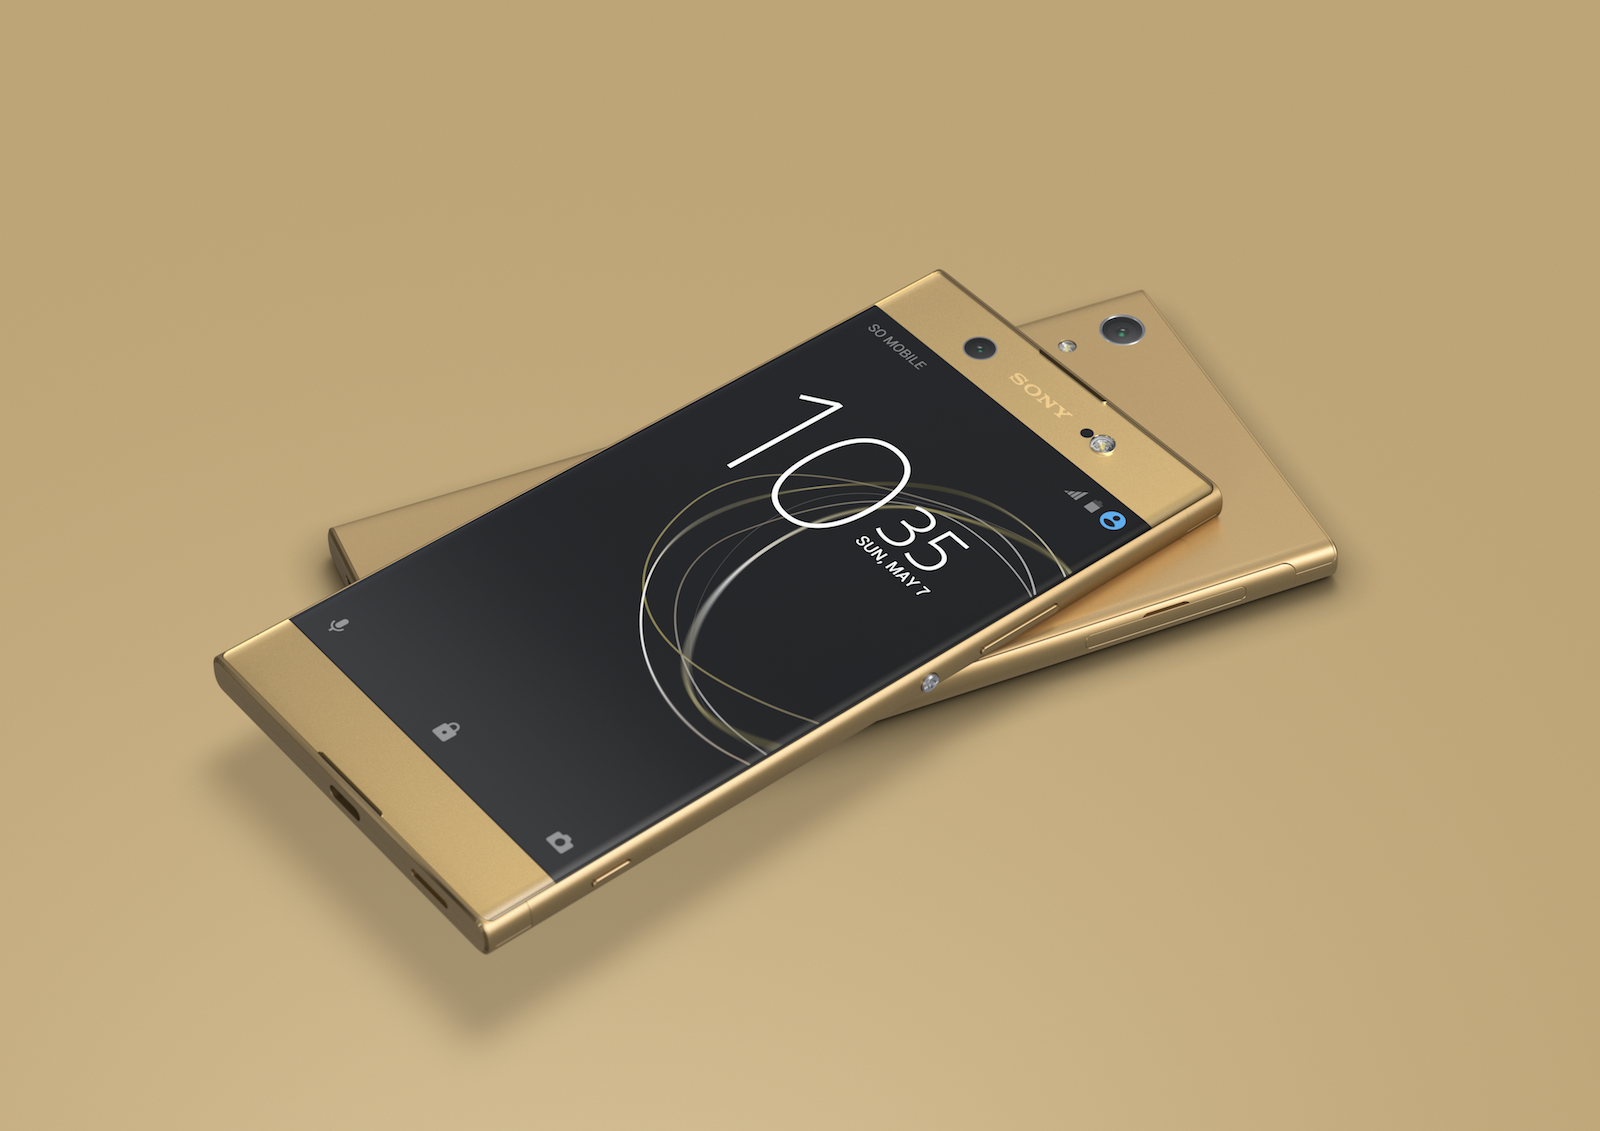 Sony Xperia Xz Full Phone Specifications Gsm Arena Autos Post